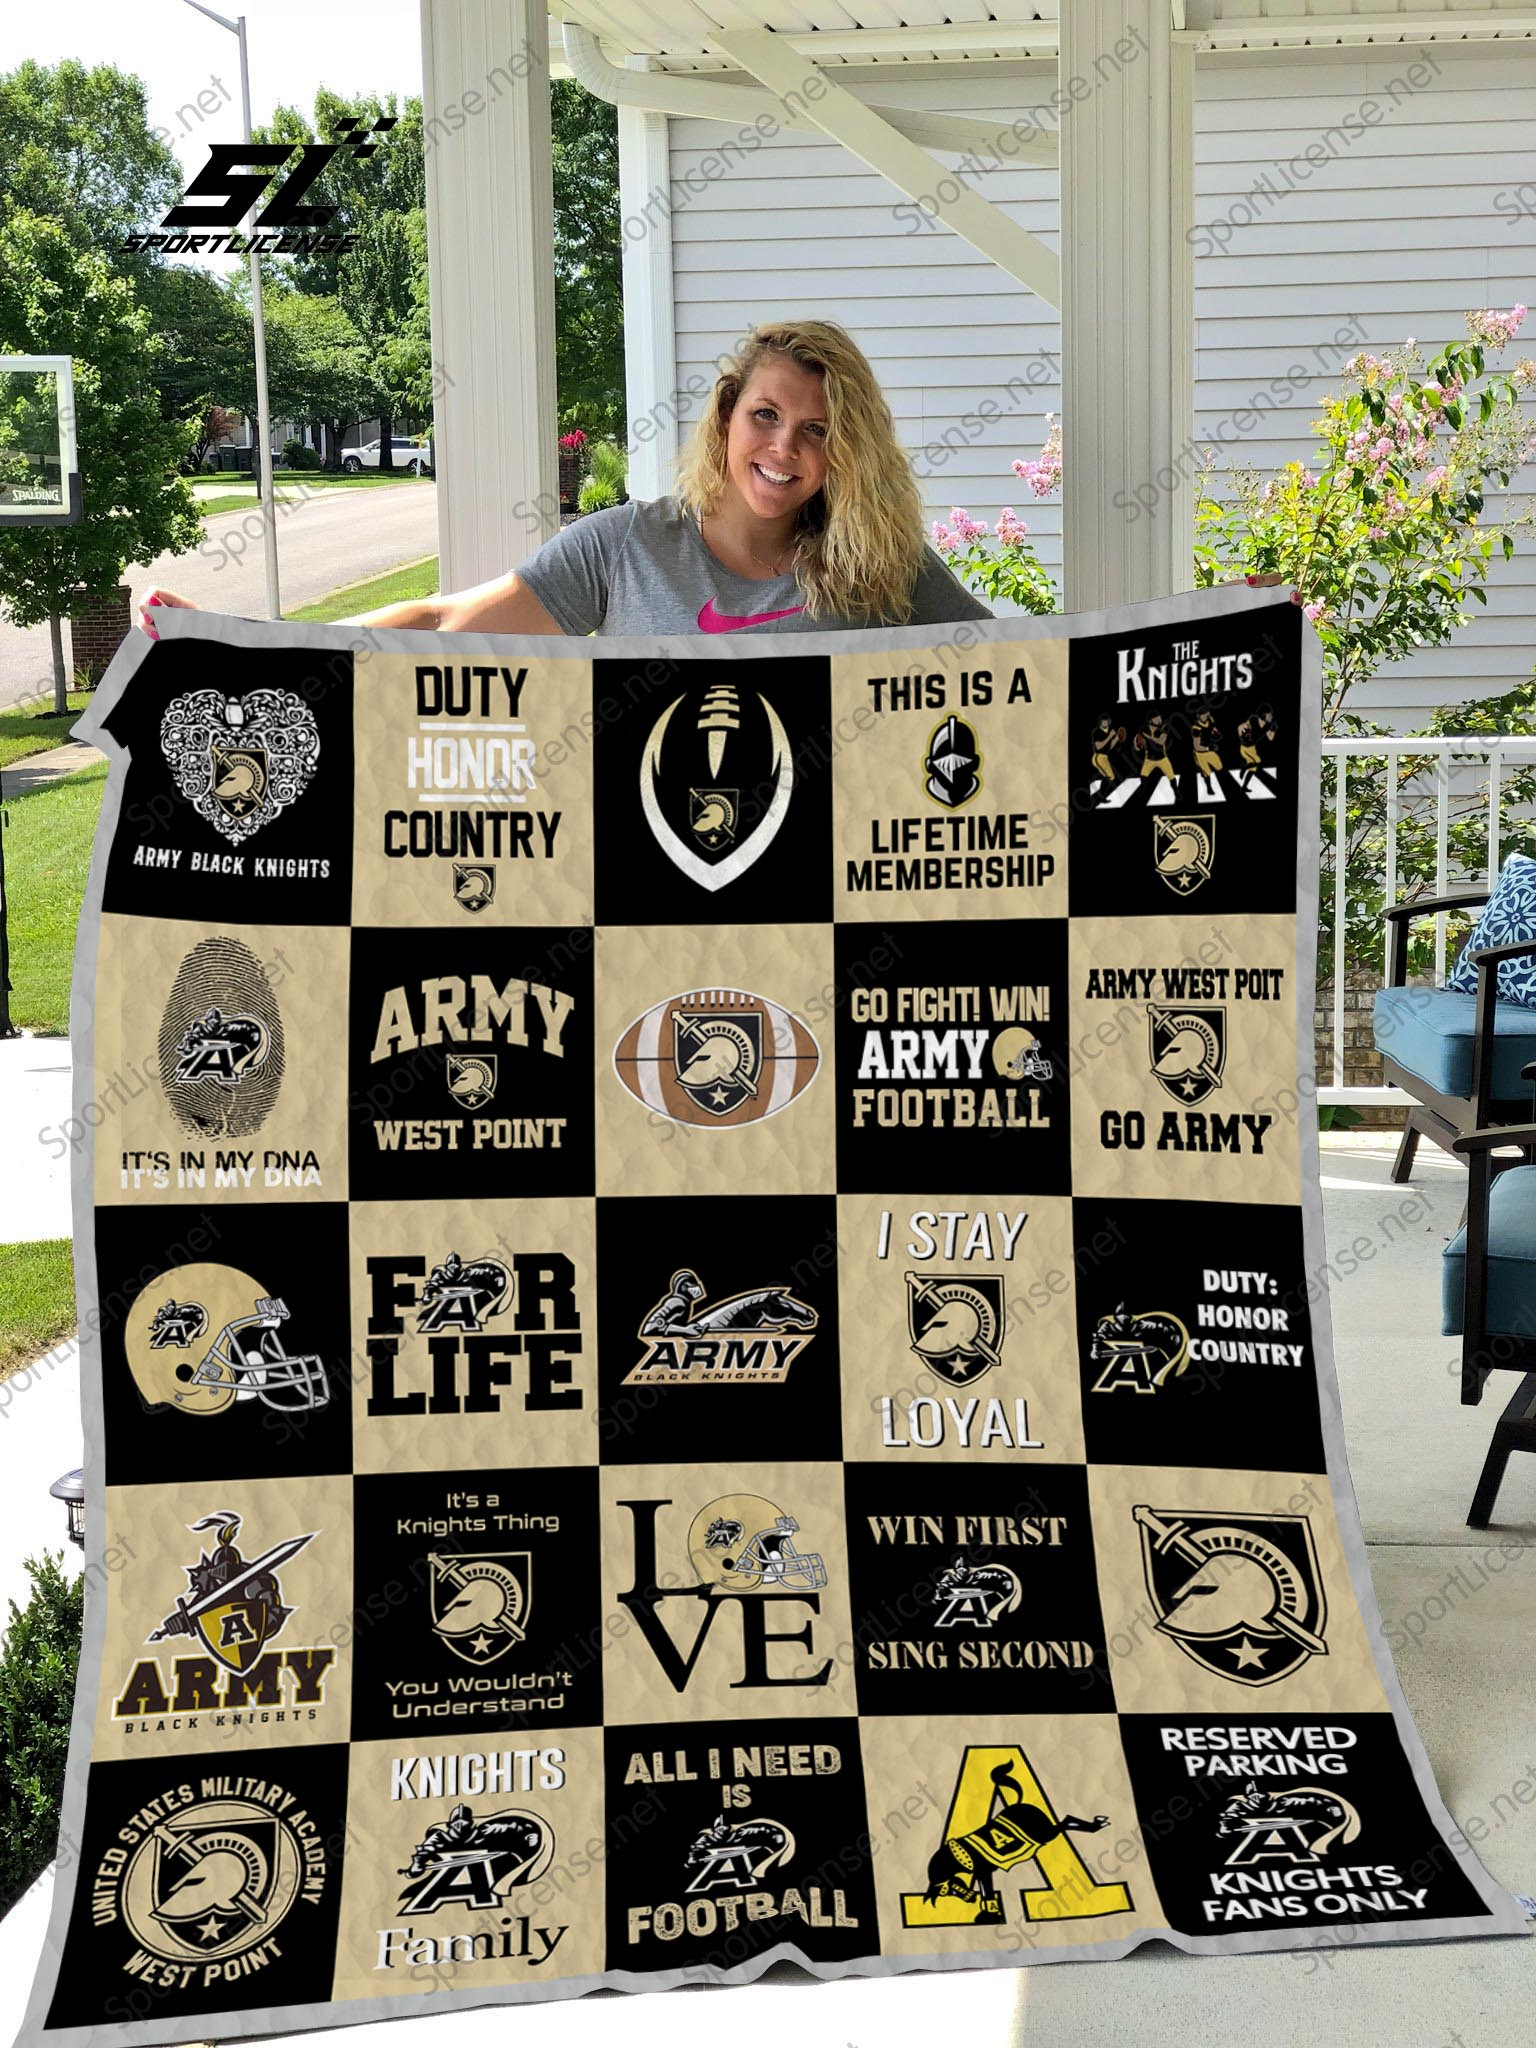 Army west point black knights quilt 3